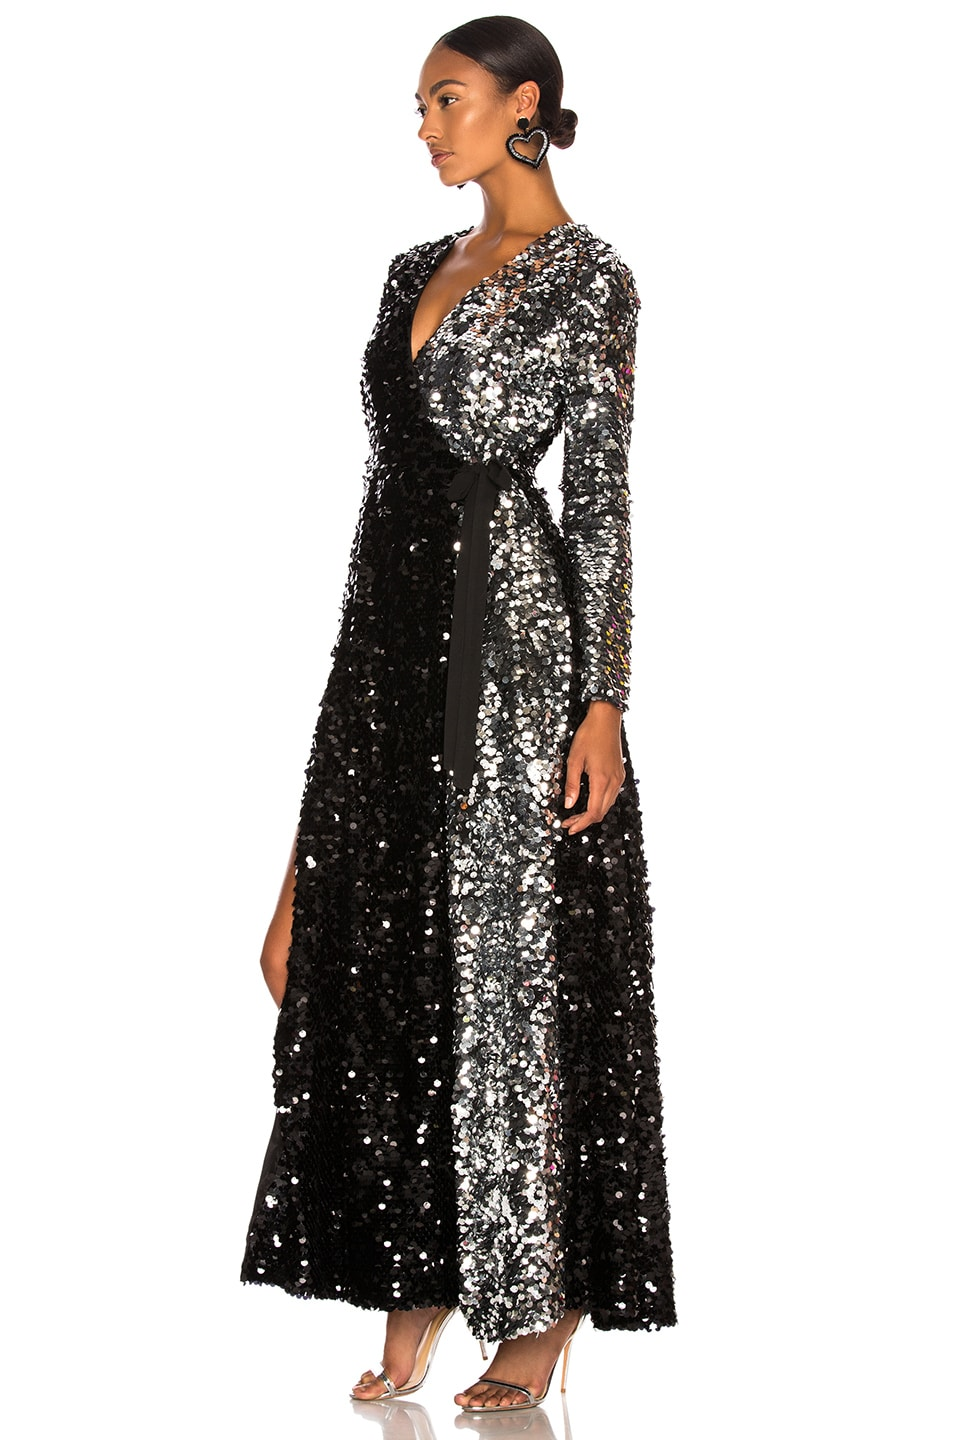 Image 3 of we are LEONE Contrast Sequin Wrap Dress in Black Onyx & Silver